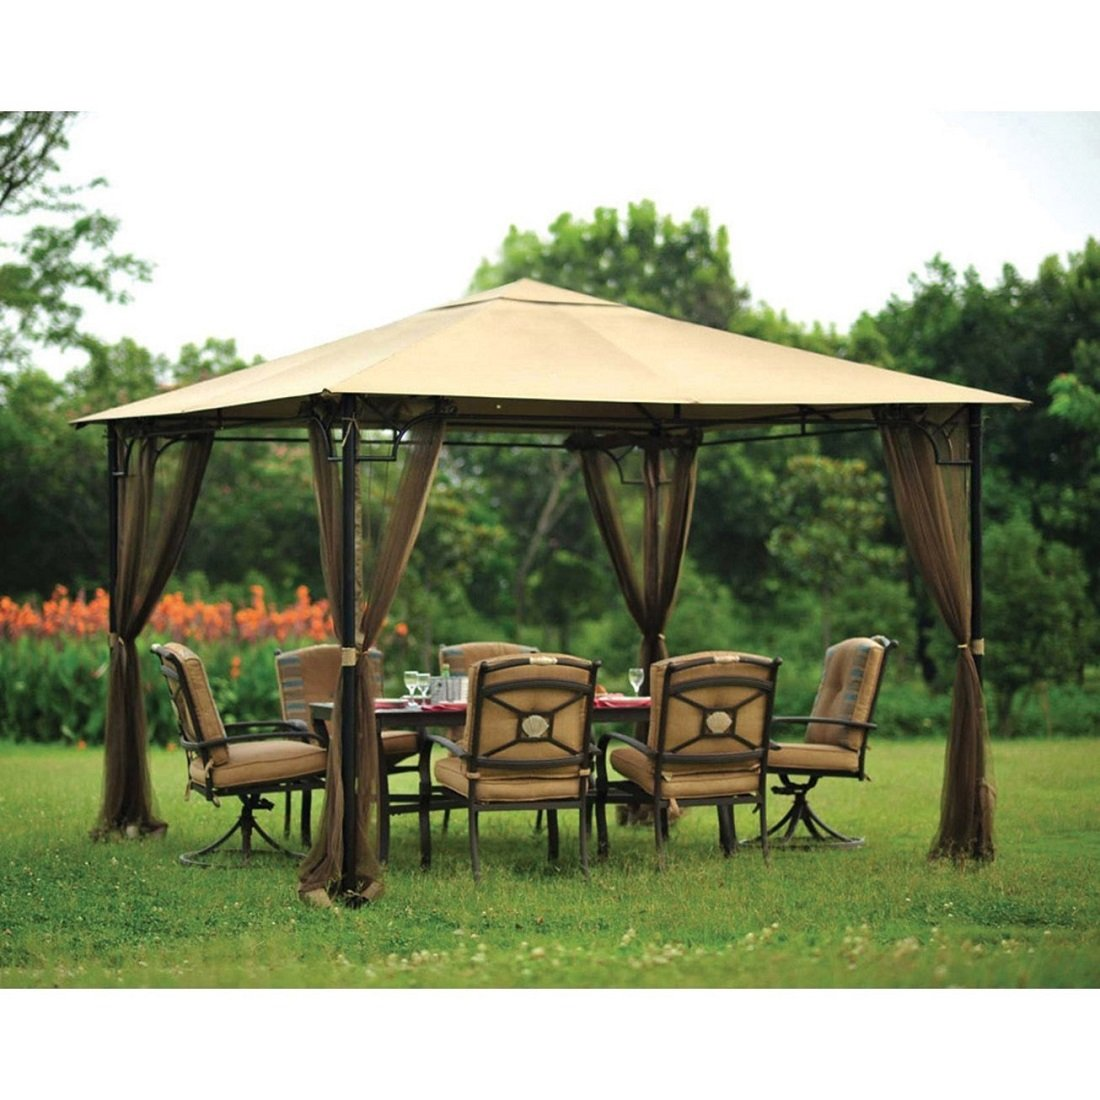 Amazon.com  Living Accents 10ft x 10ft Gazebo Netting (gazebo sold separately)  Garden u0026 Outdoor  sc 1 st  Amazon.com & Amazon.com : Living Accents 10ft x 10ft Gazebo Netting (gazebo ...